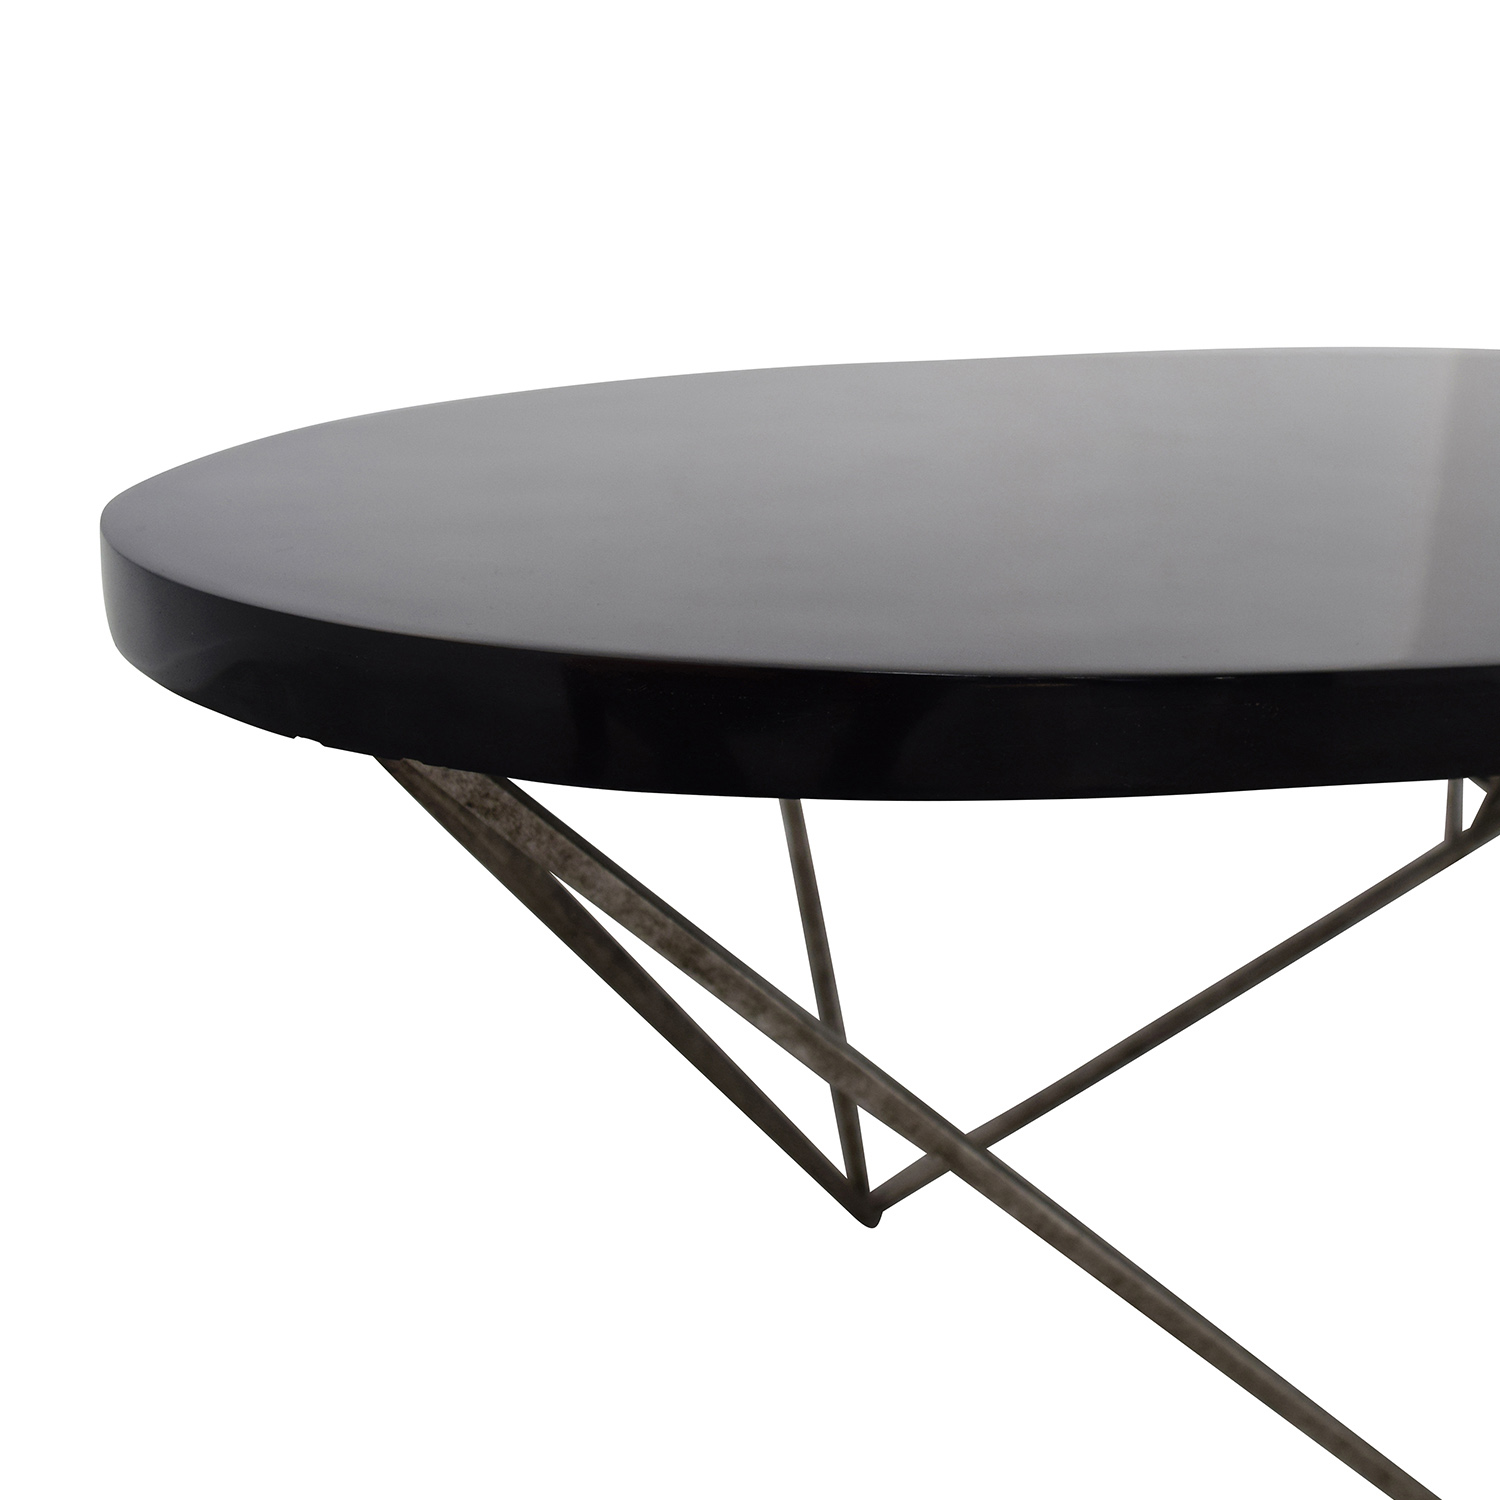 oly studio oly studio george cocktail table for sale - Oly Furniture Sale